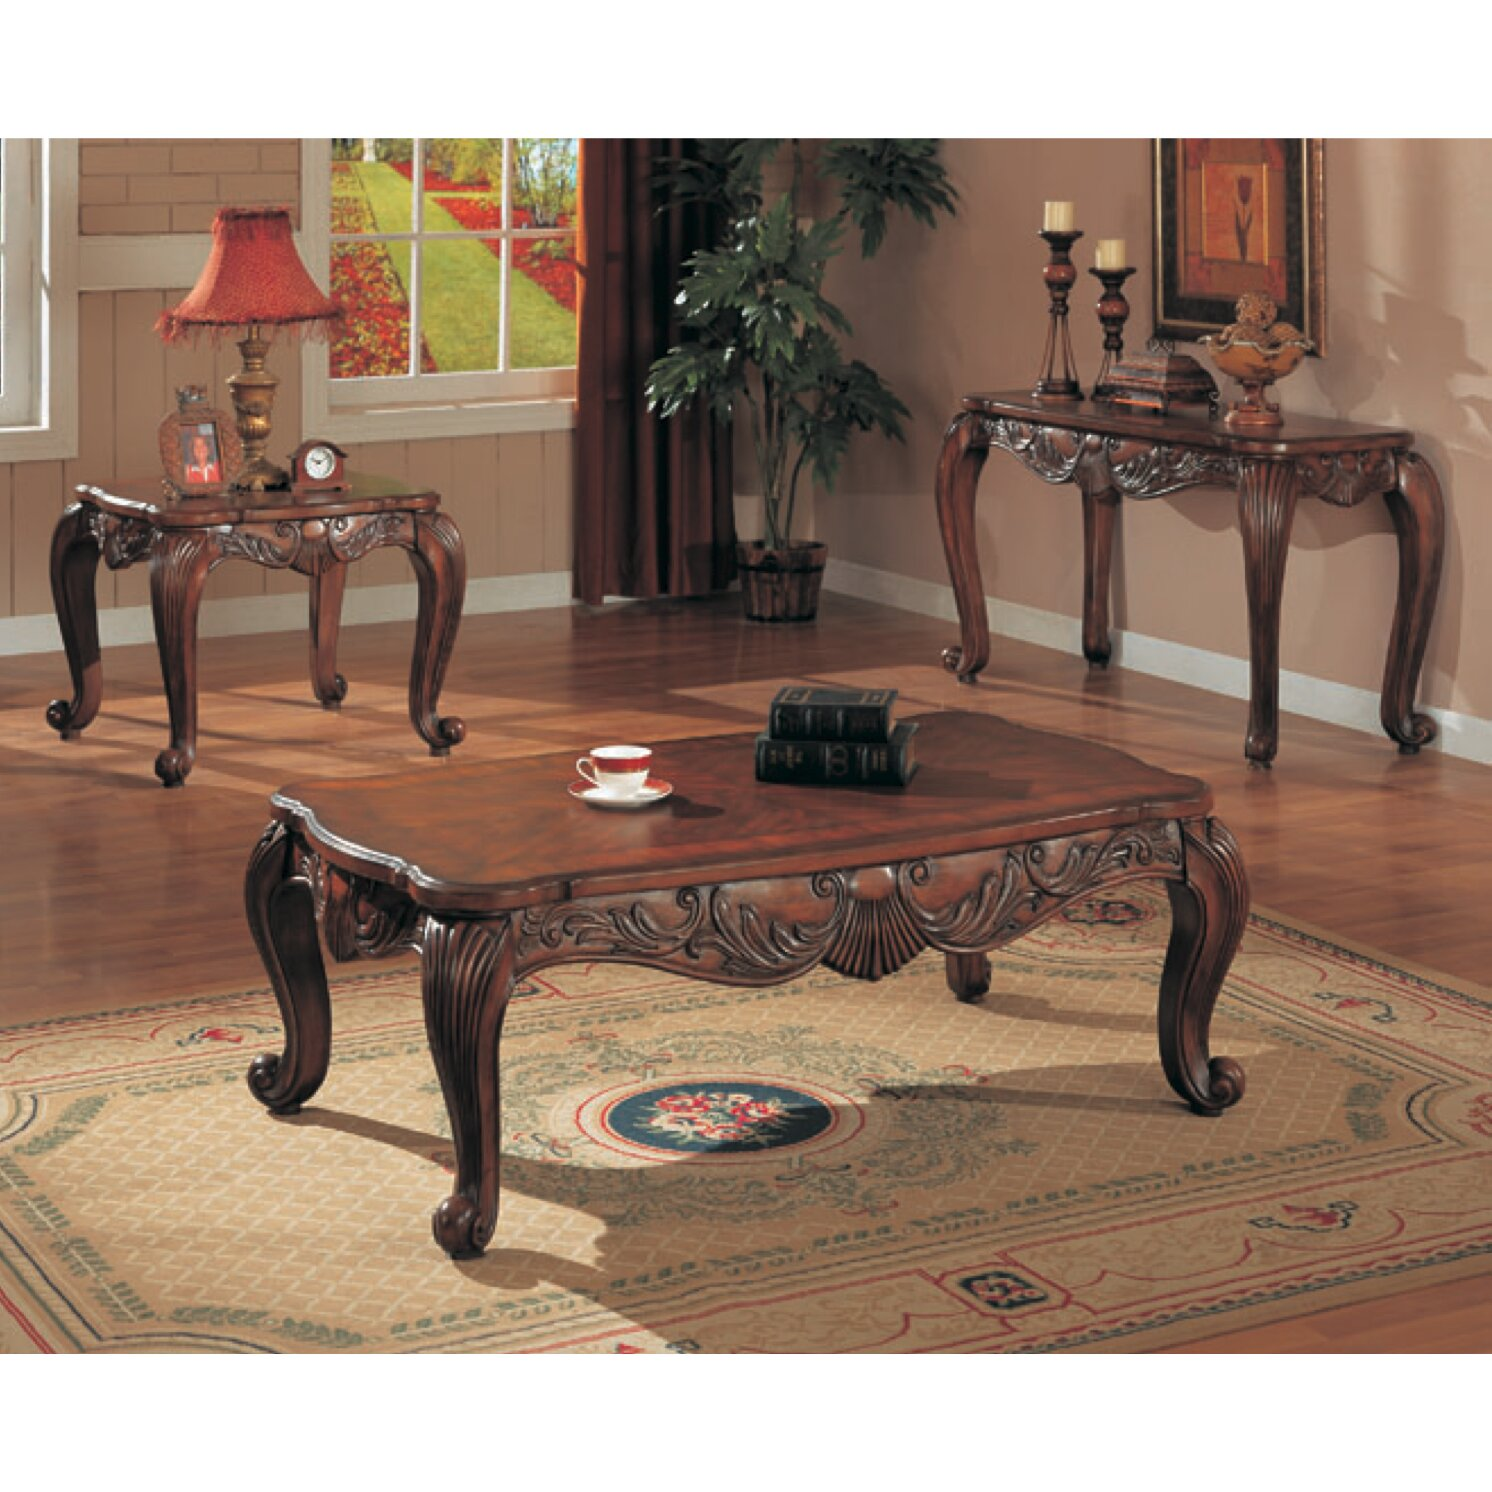 Wildon home atherton coffee table reviews wayfair for Table 52 reviews